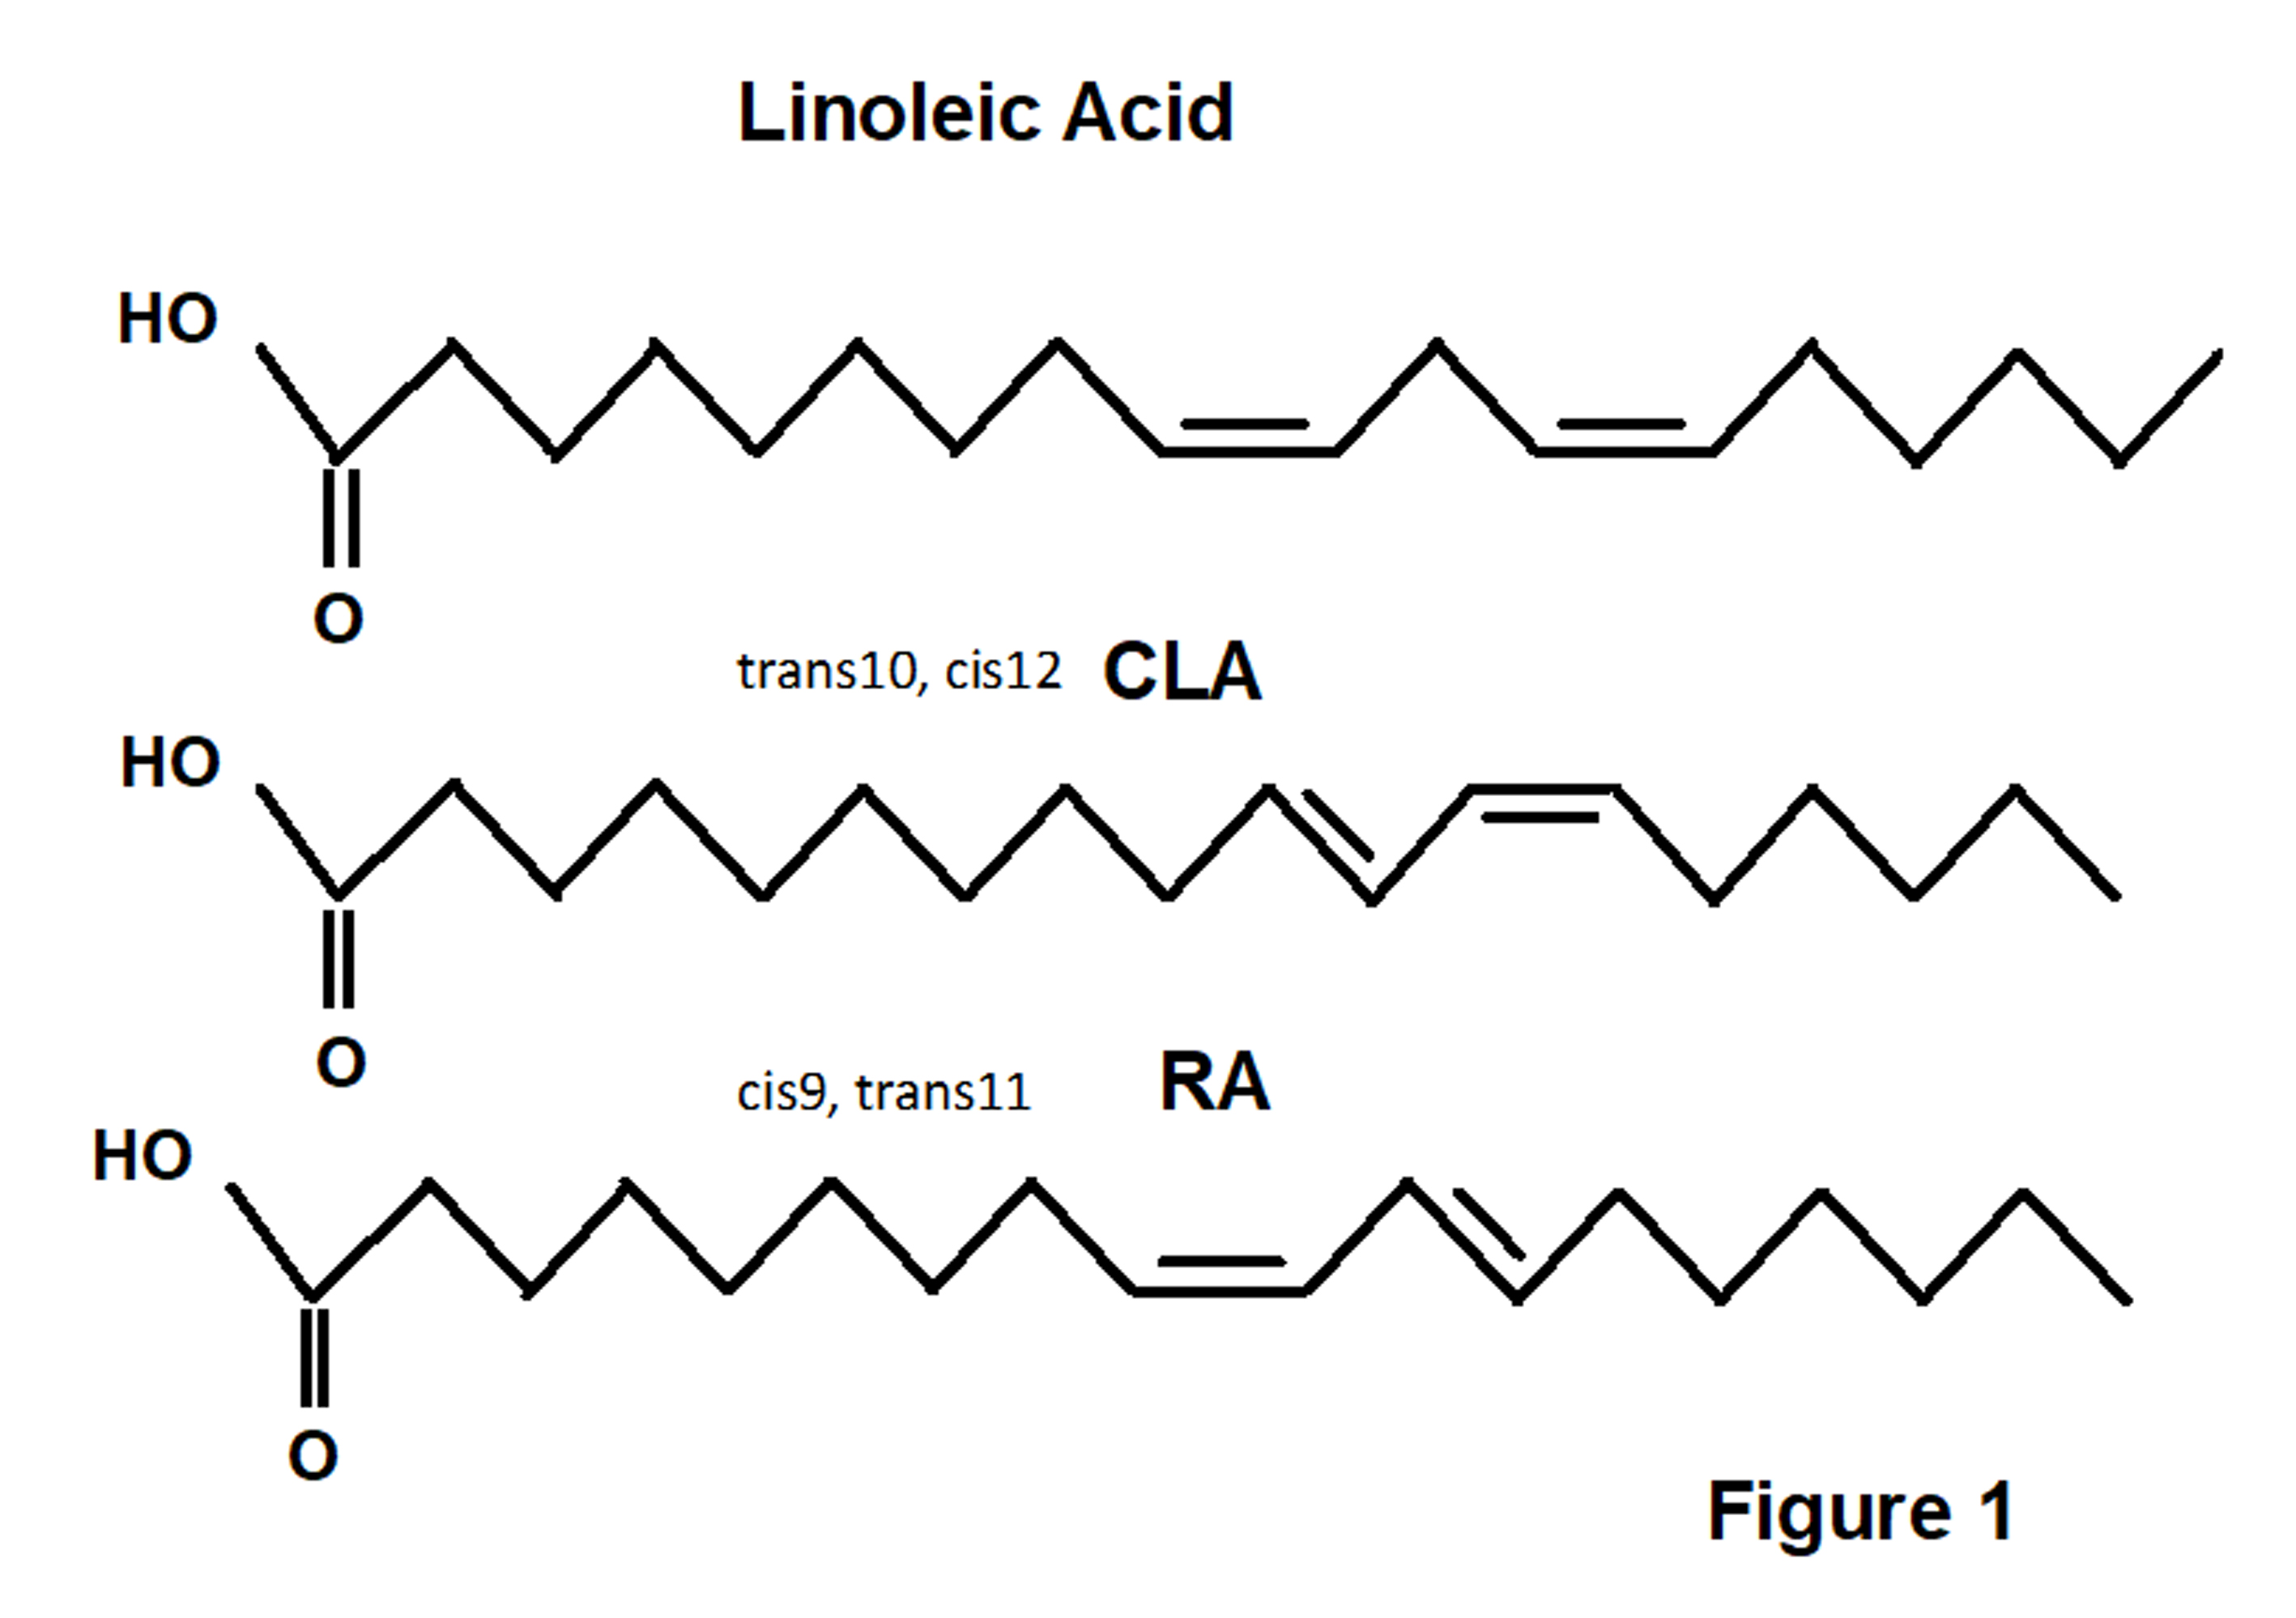 Conjugated linoleic acid CLA and Rumenic Acid RA